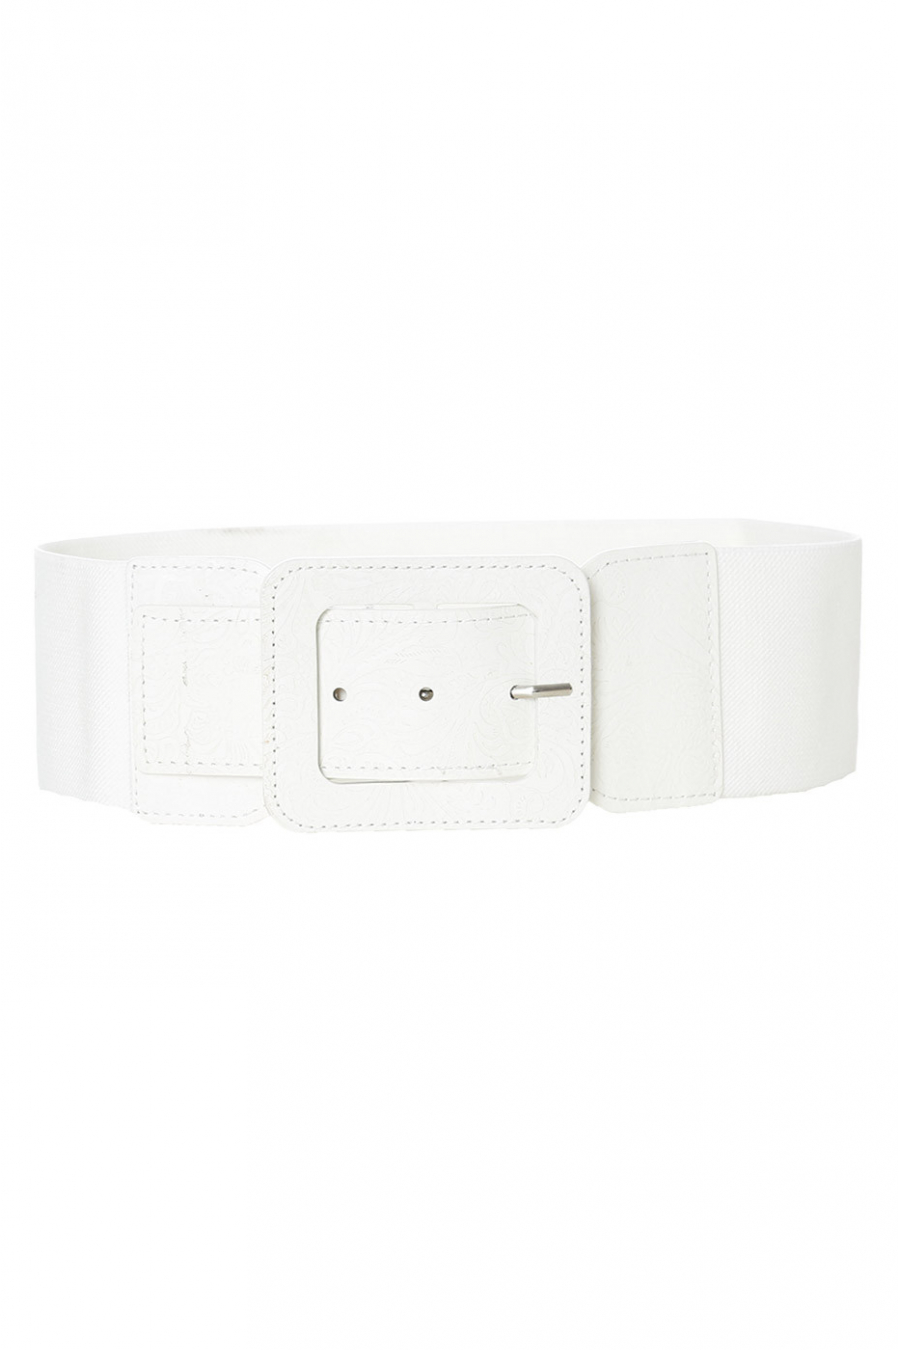 Elastic white belt with rectangle buckle. SG-0750